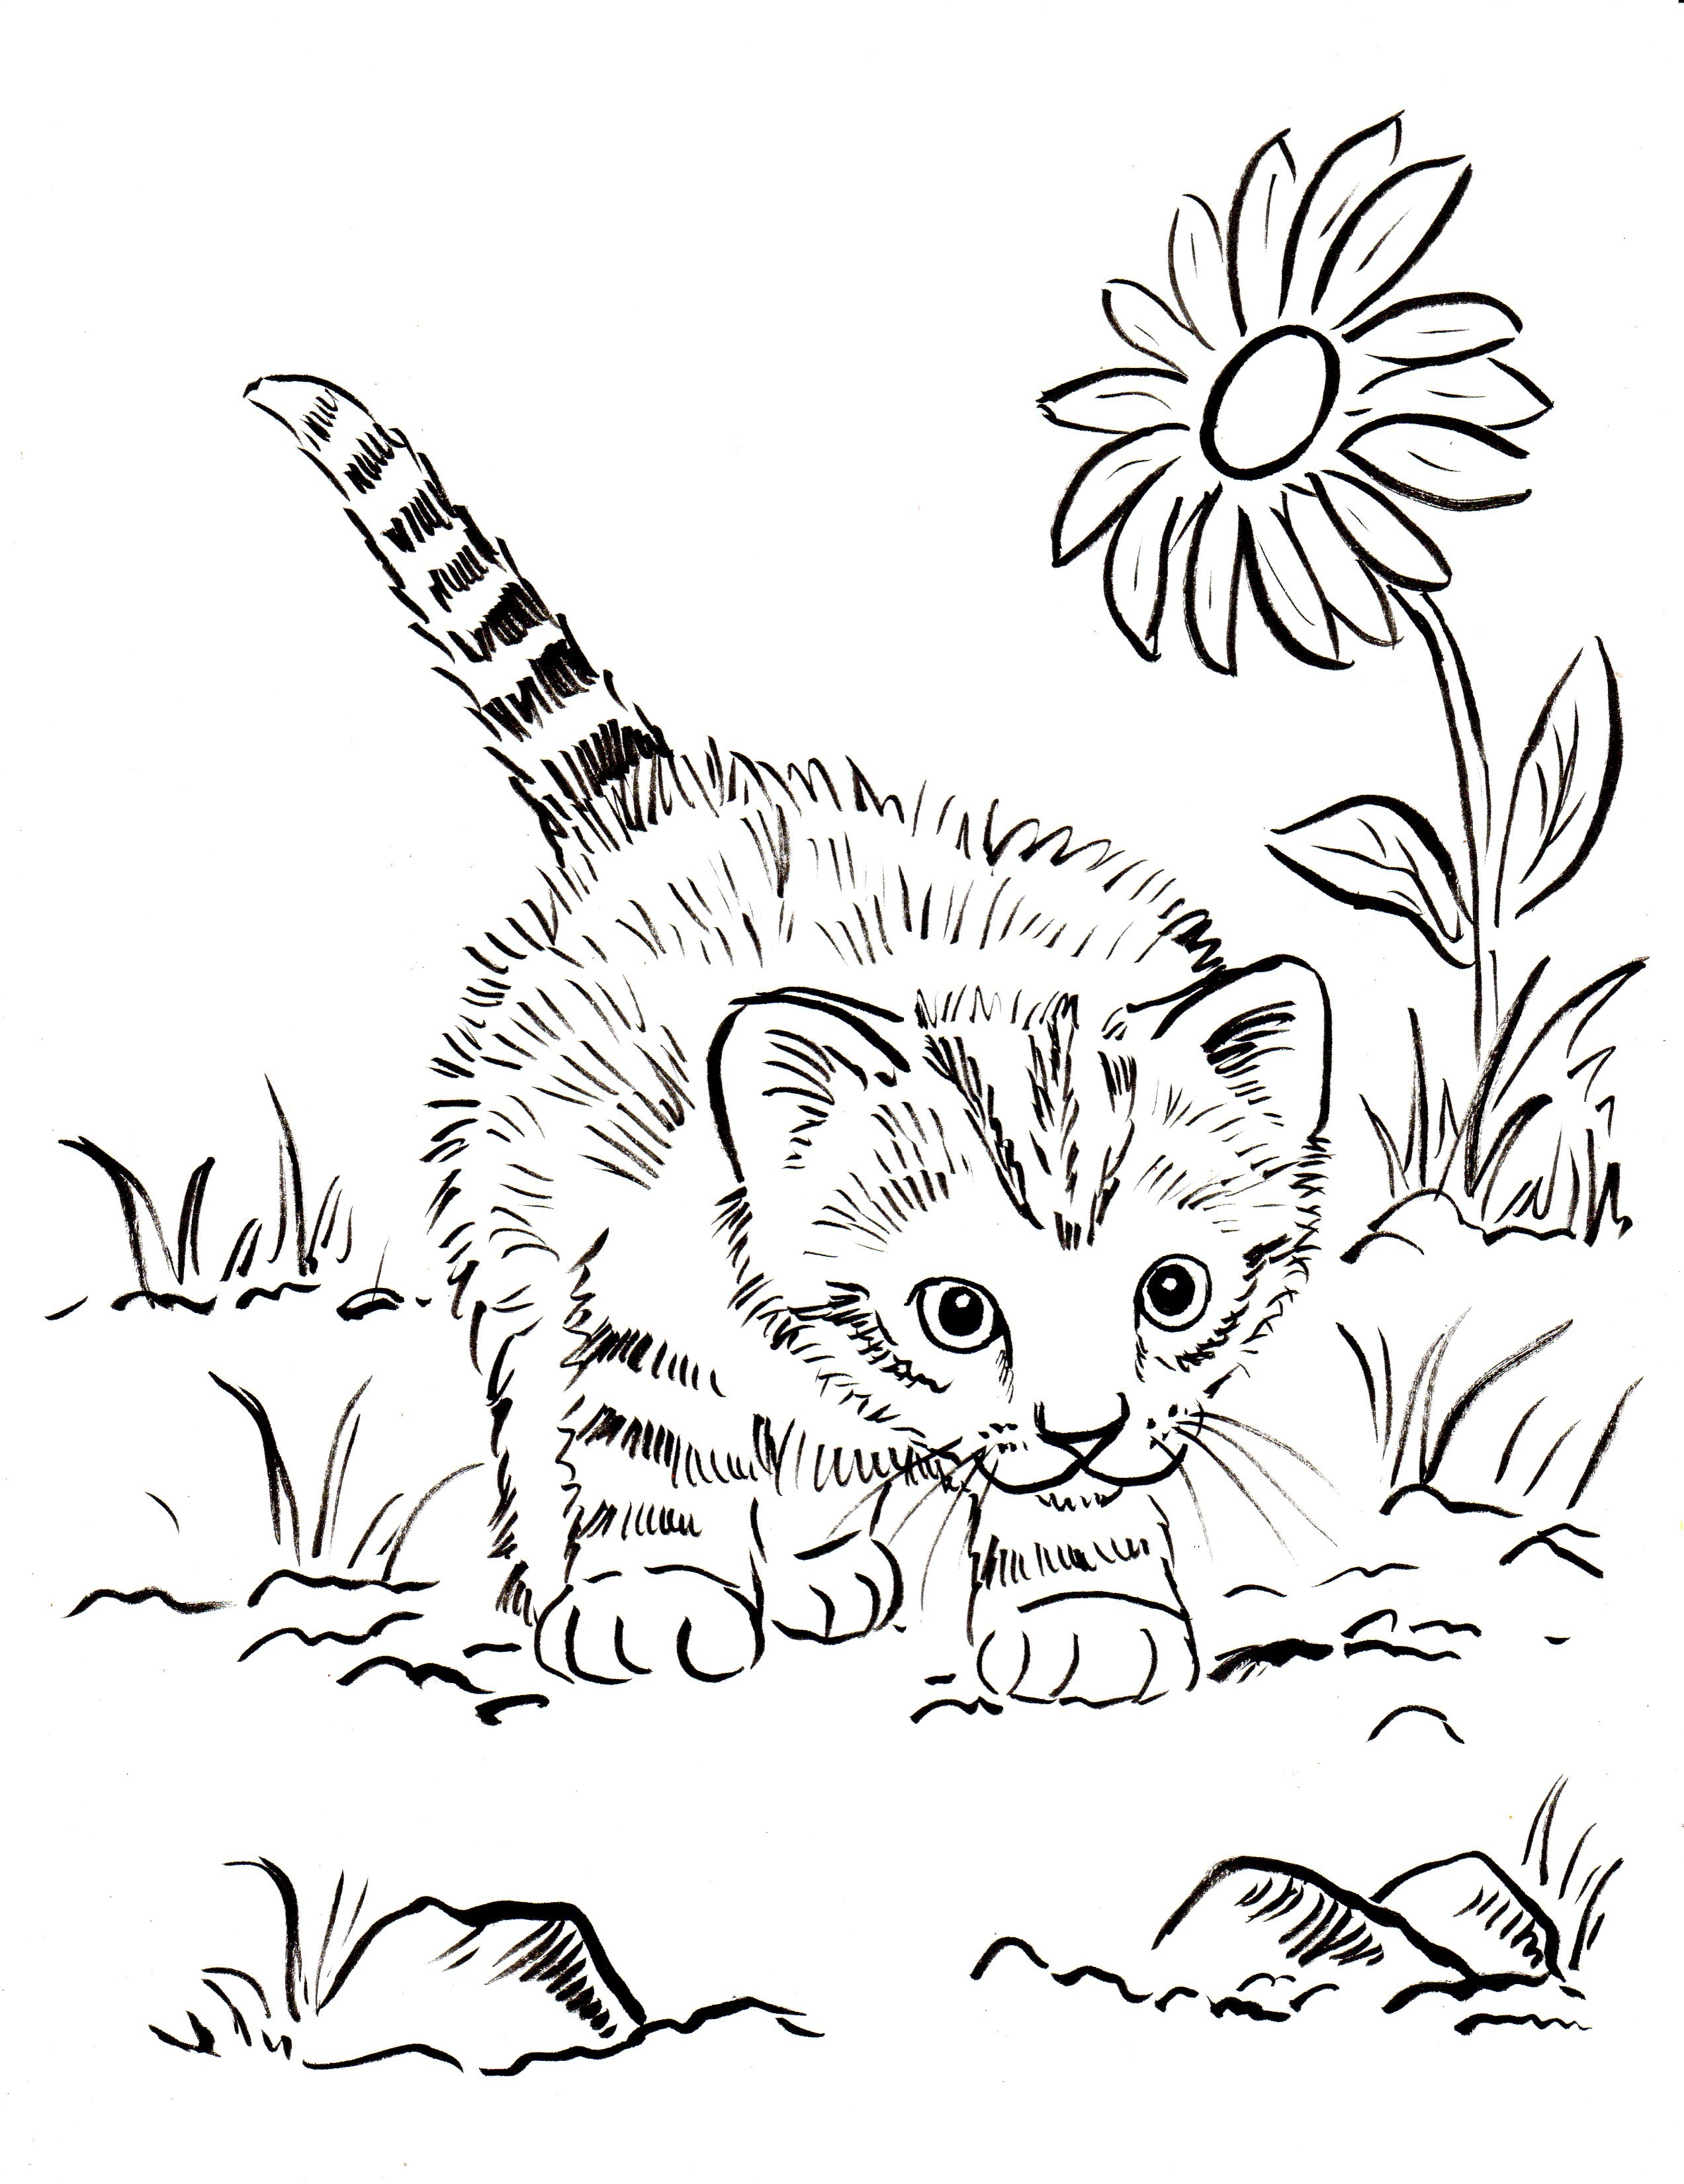 blank kitten coloring book pages - photo#30